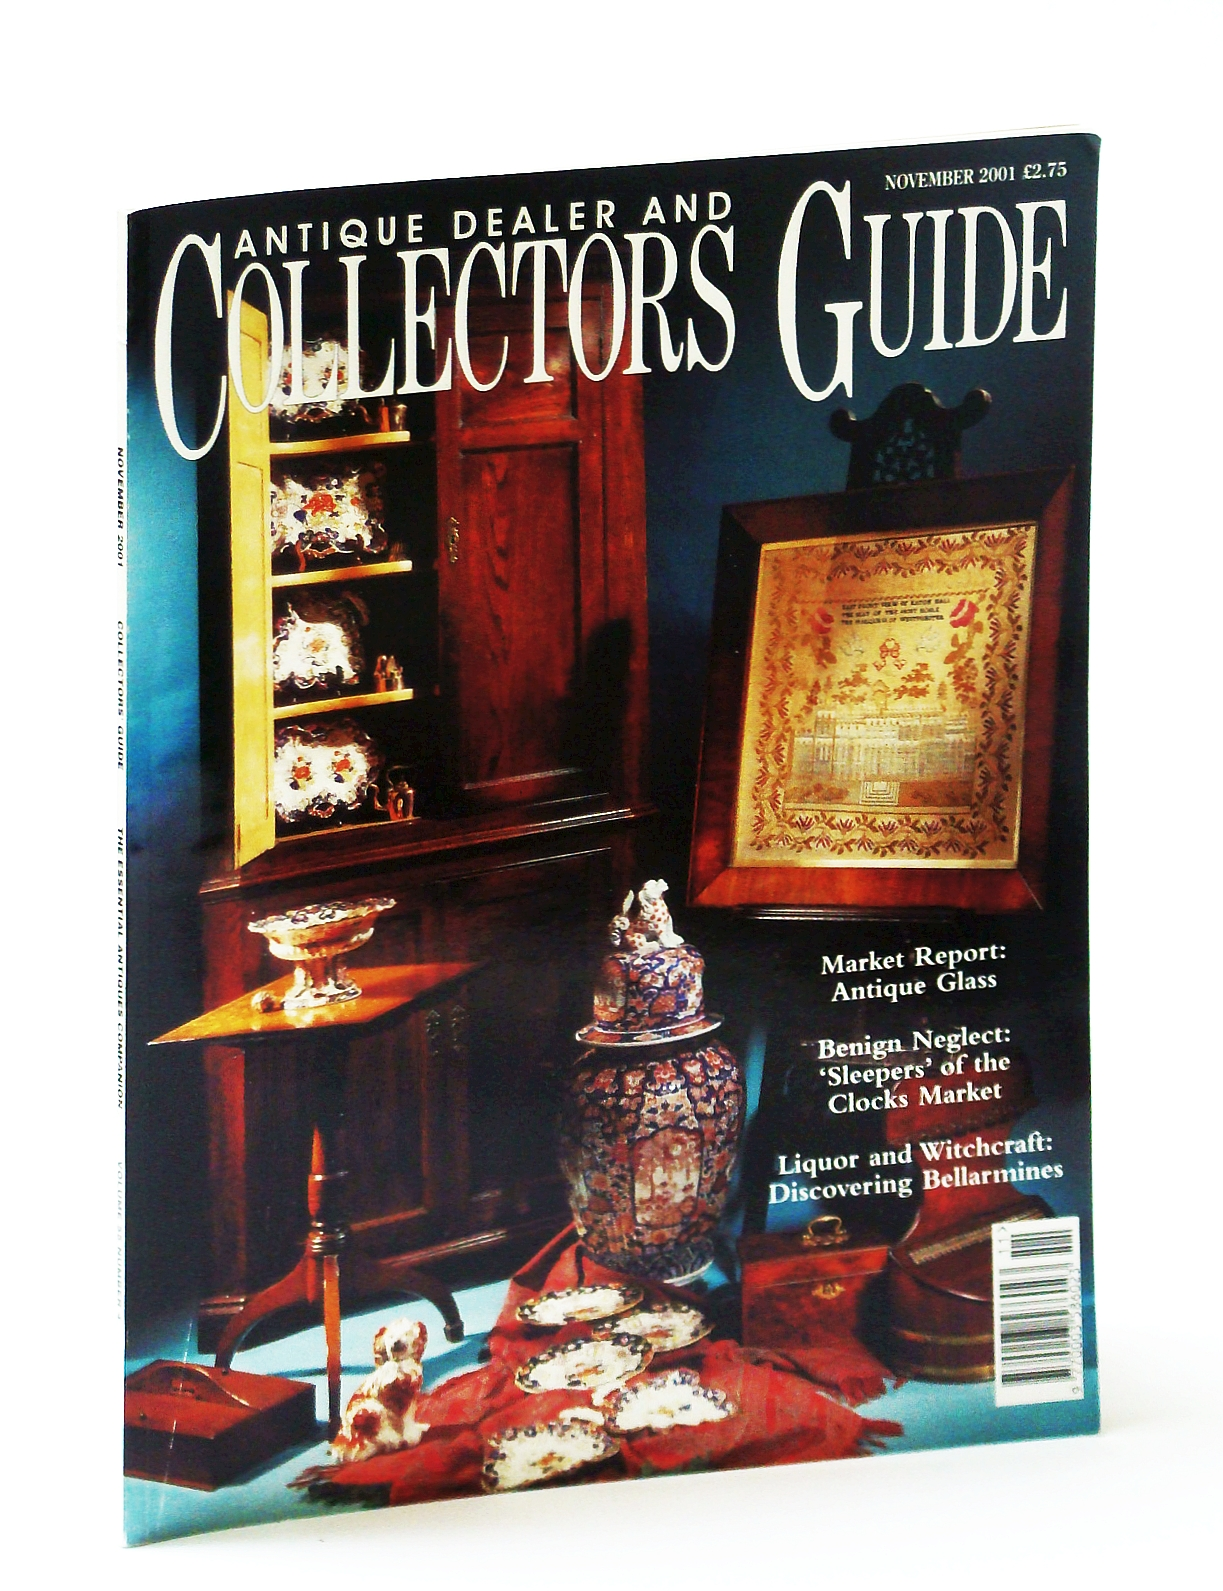 Image for Antique Dealer and Collectors Guide Magazine, November (Nov.) 2001 - William Mein Smith (1799-1869)